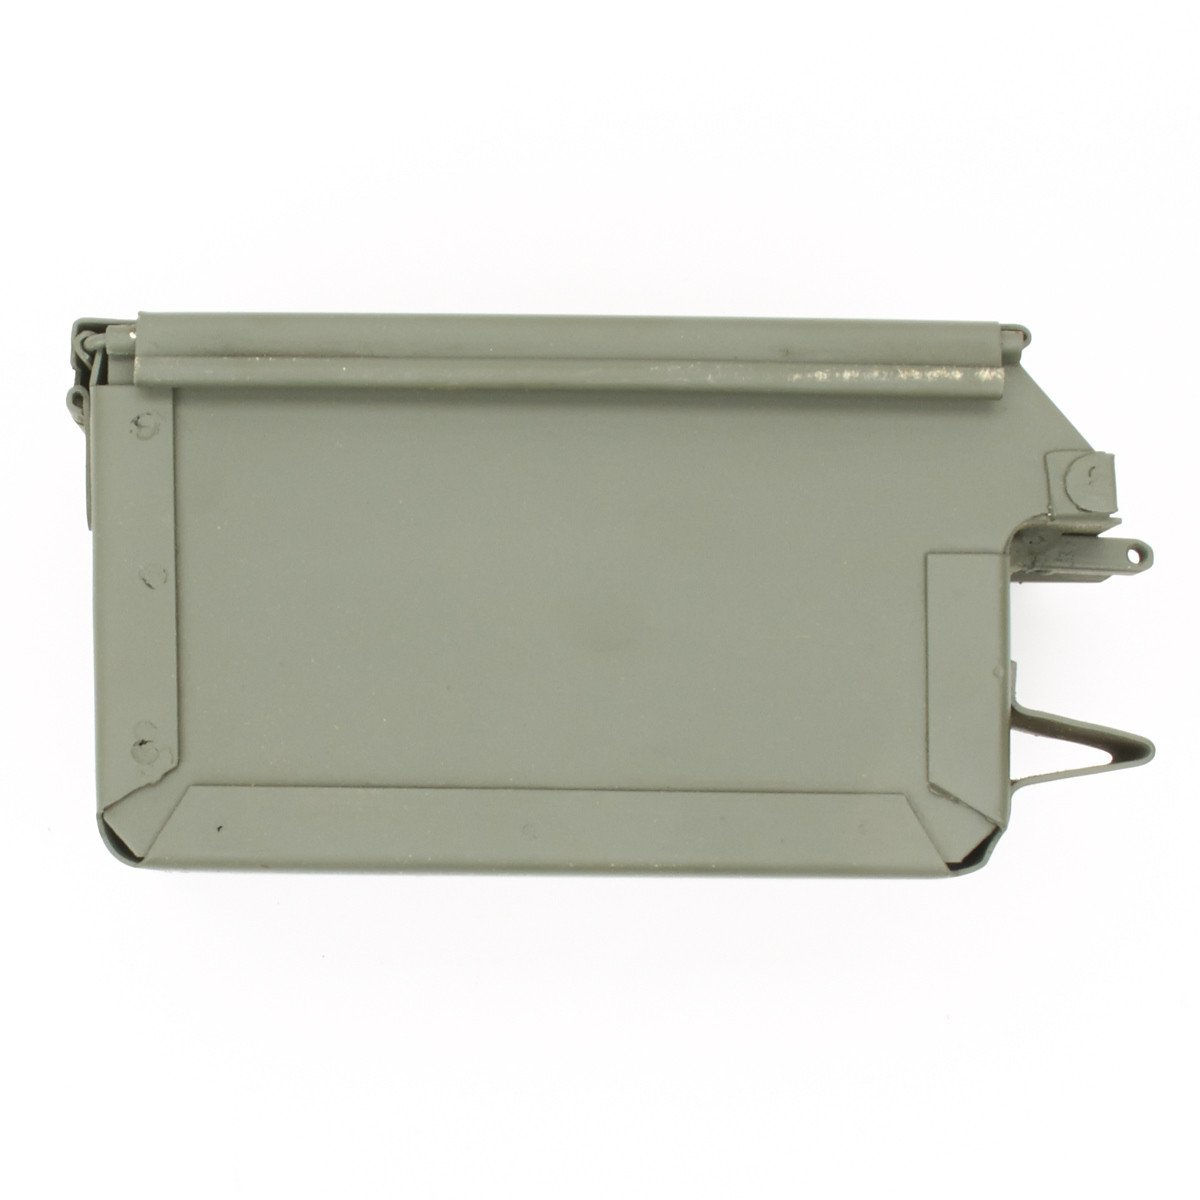 U S  WWII Browning  30 Cal 1919A4 Feed Tray 100 Round Ammo